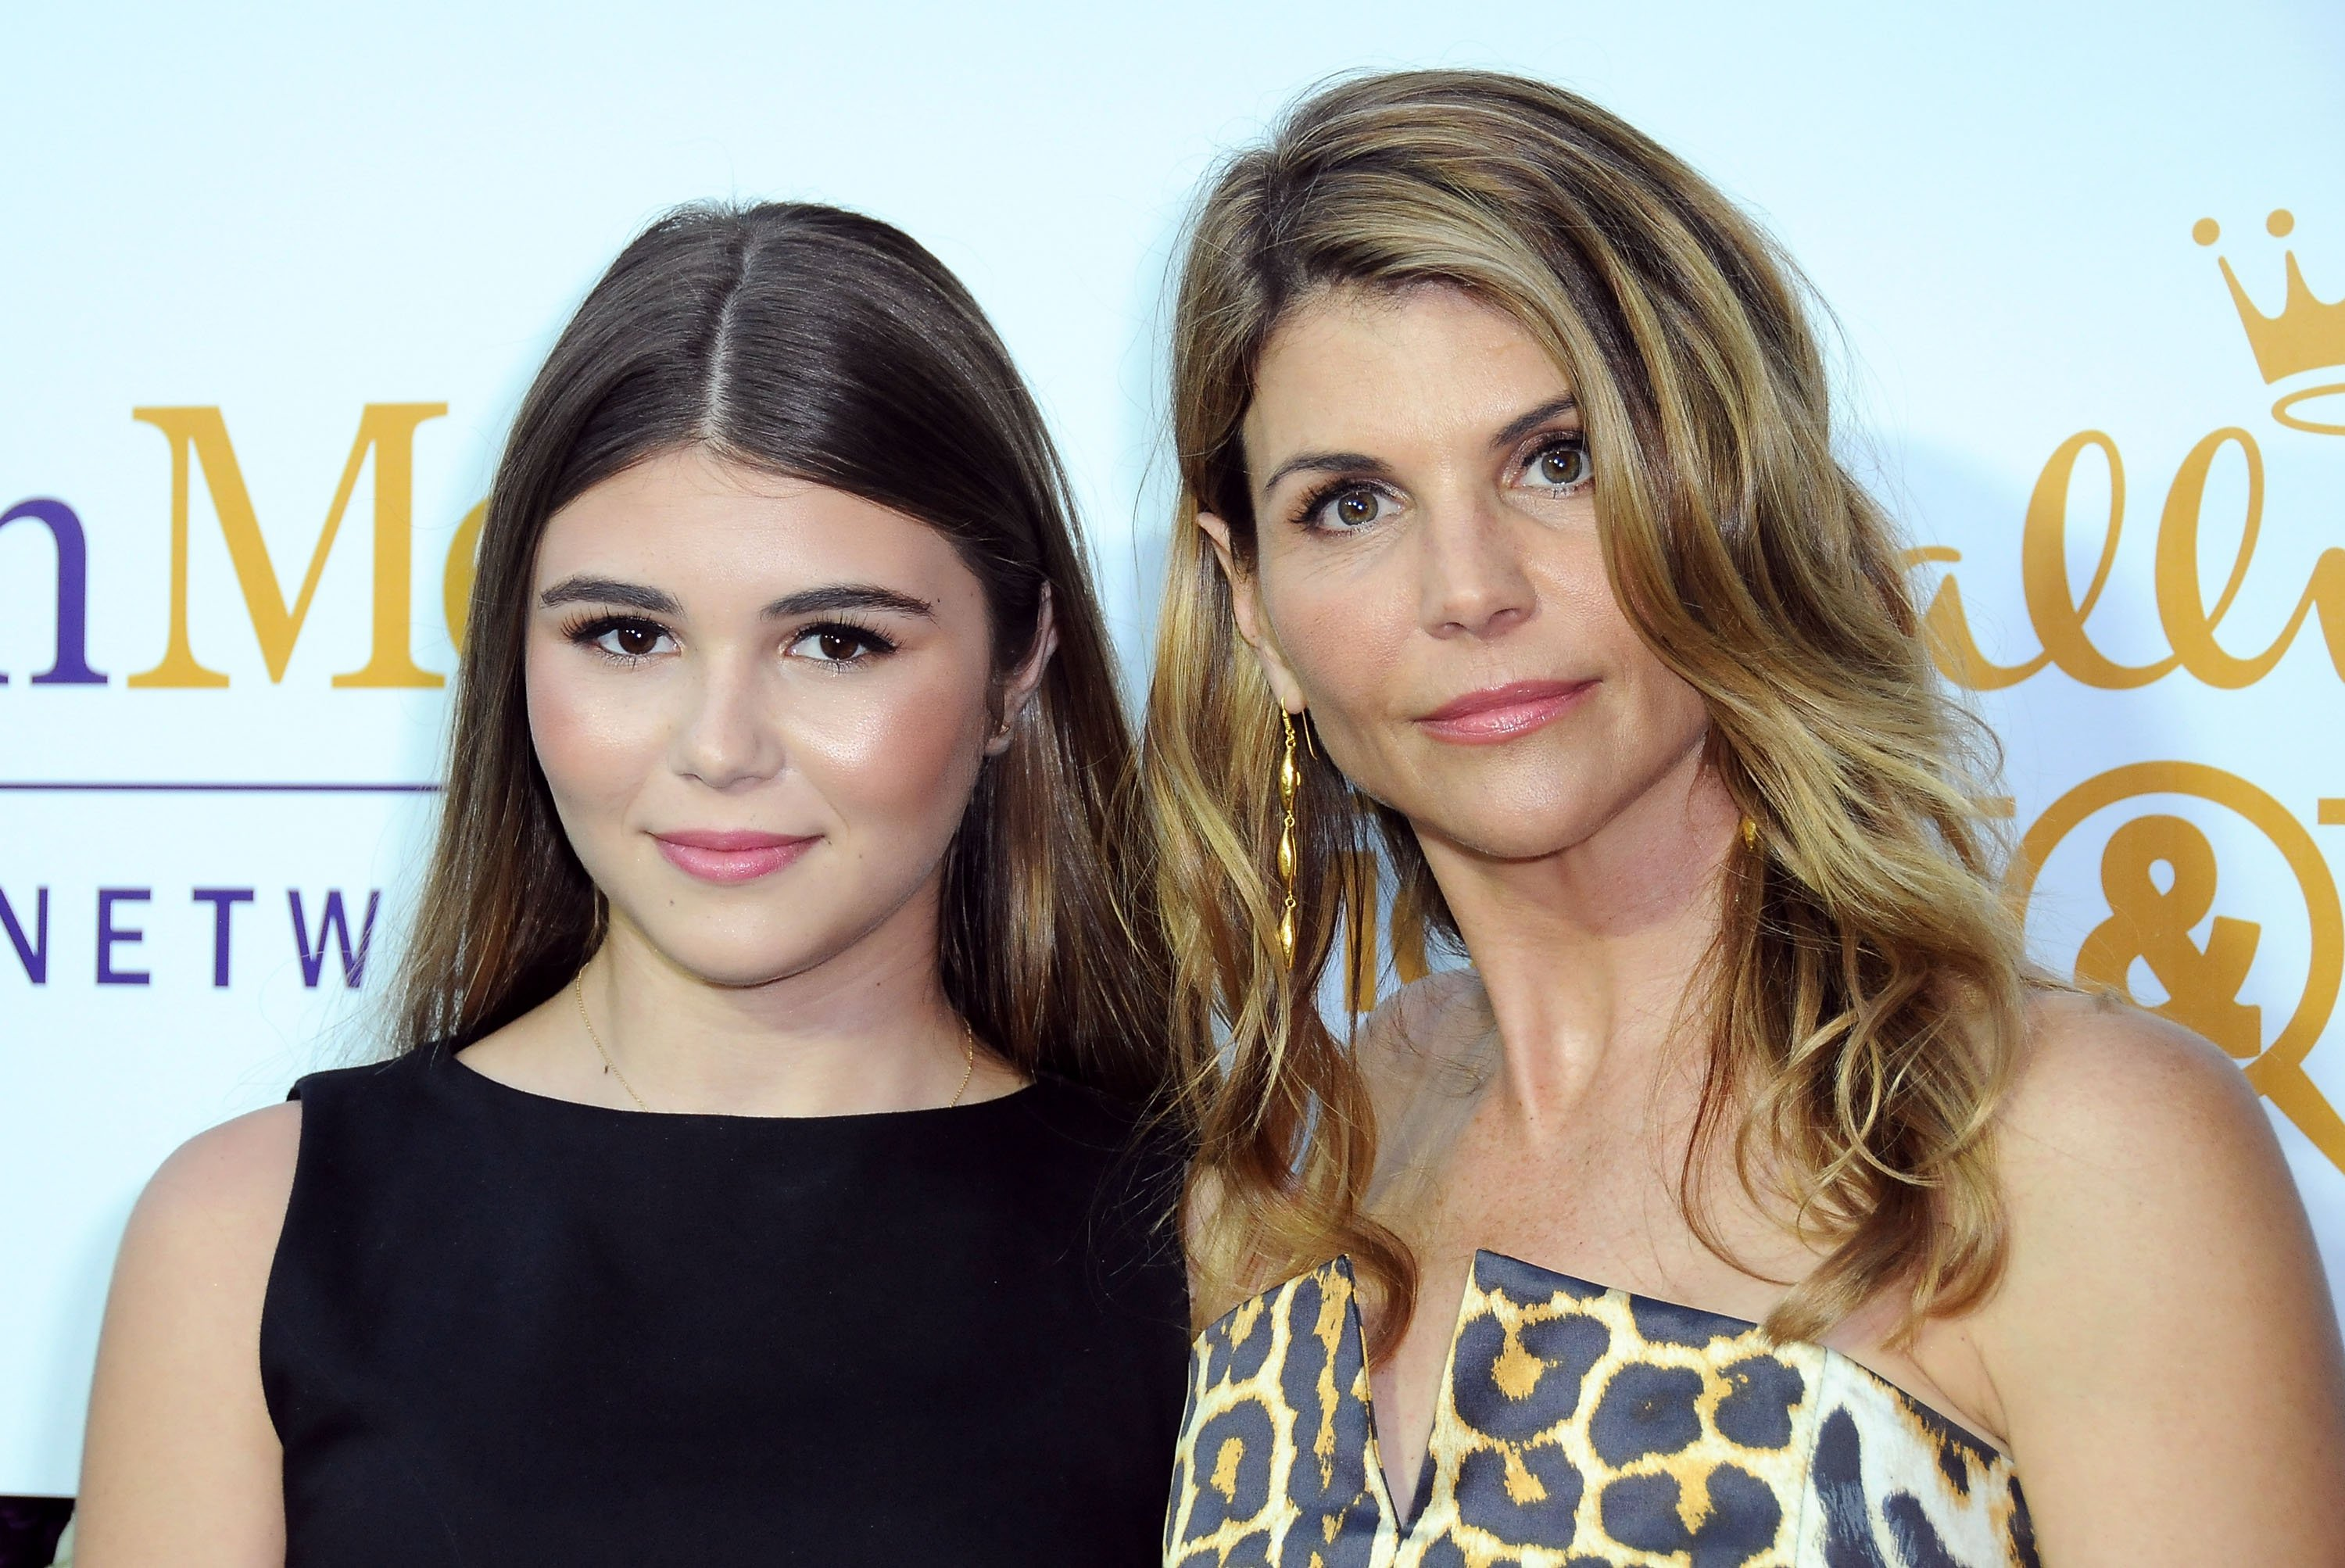 Olivia Jade Giannulli with her mother, Lori Loughlin at a Hallmark event in July 2015. | Photo: Getty Images